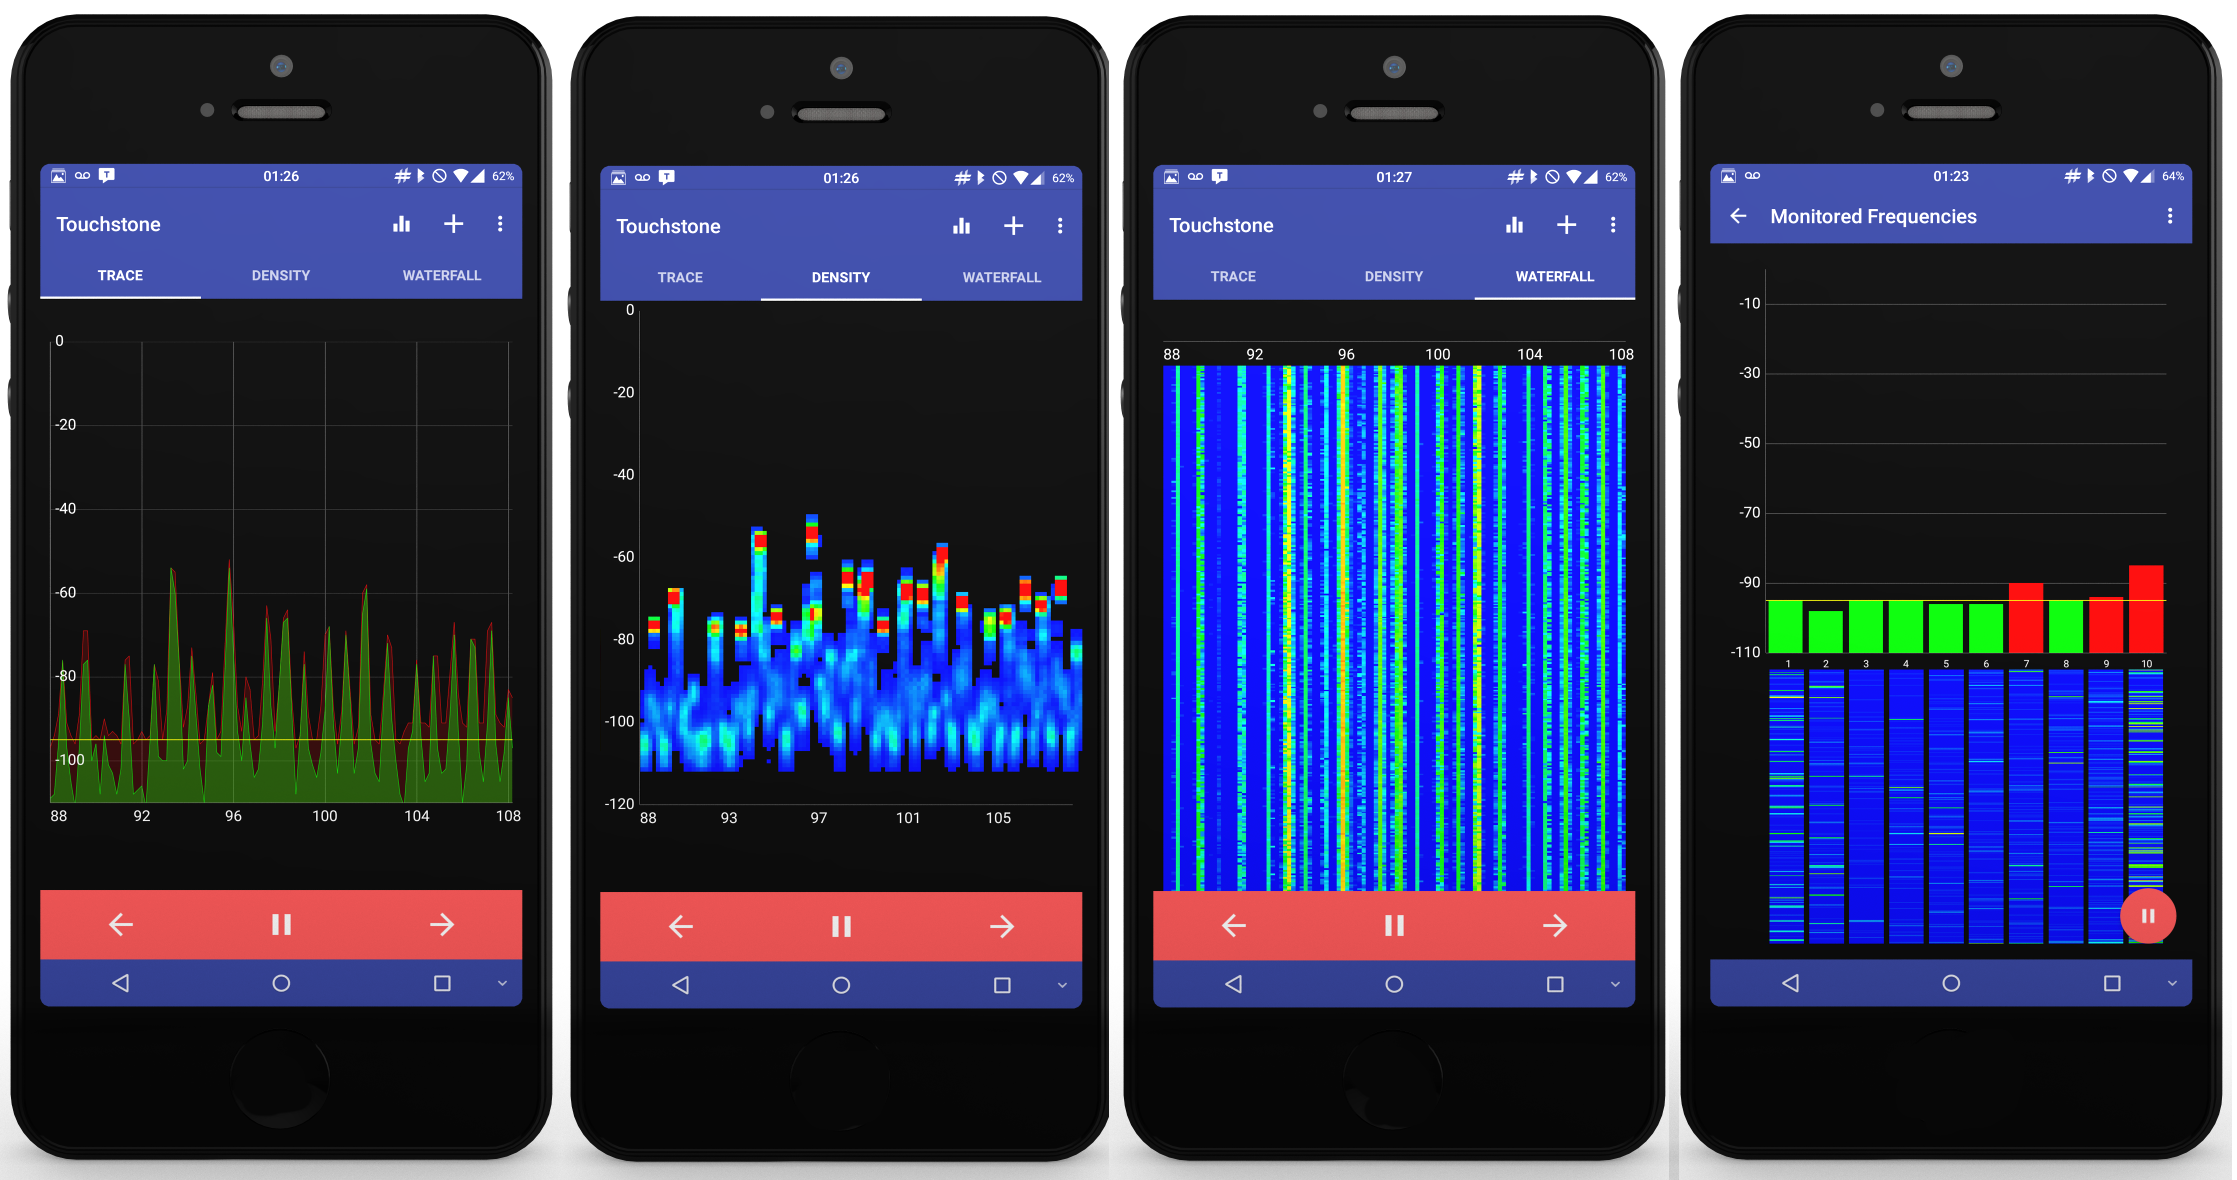 Touchstone Mobile -- RF Spectrum Analyzer Software For Android Devices